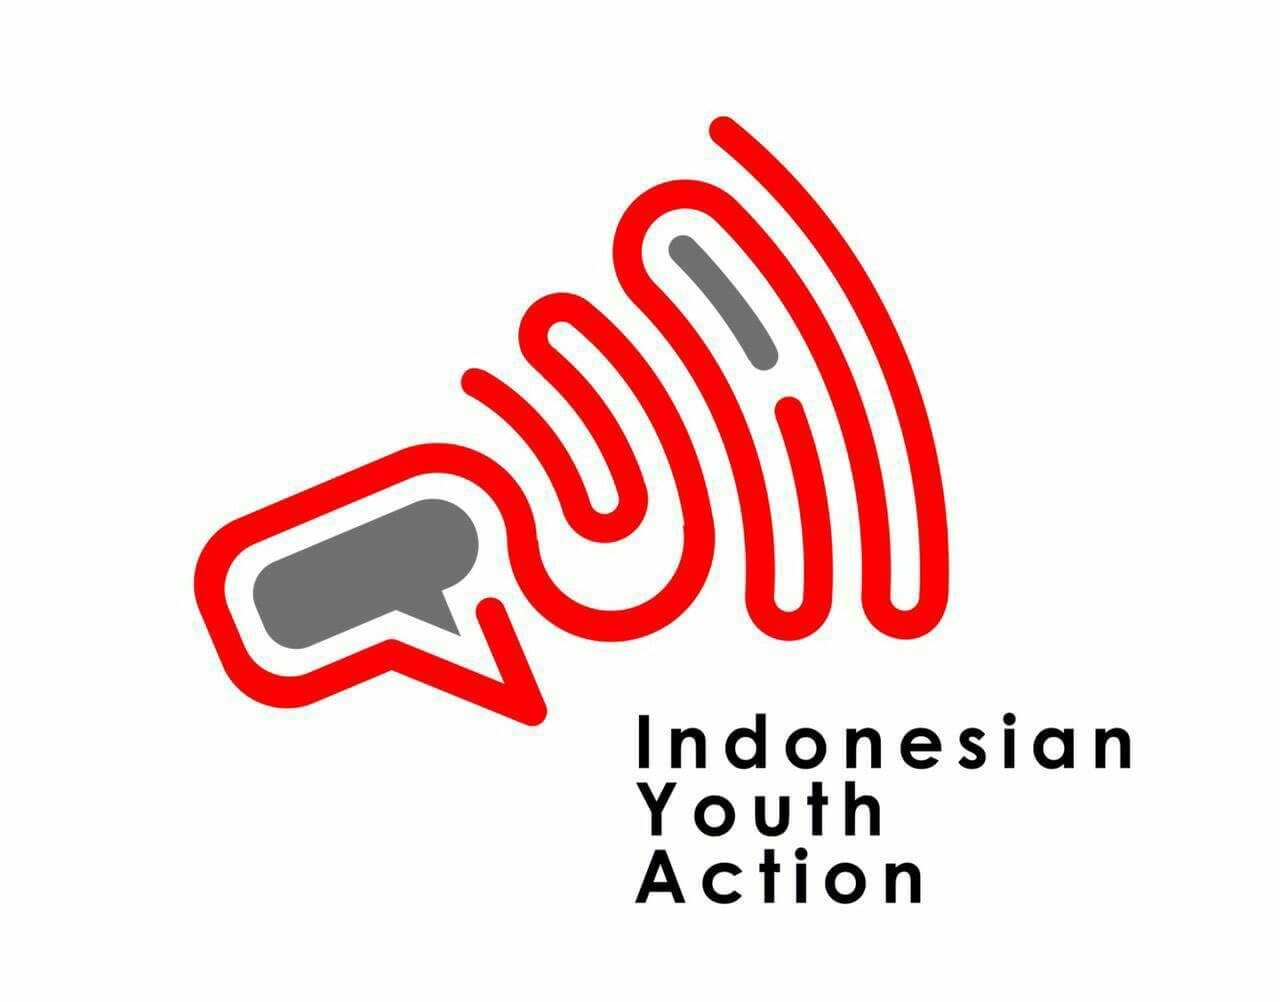 Indonesian Youth Action